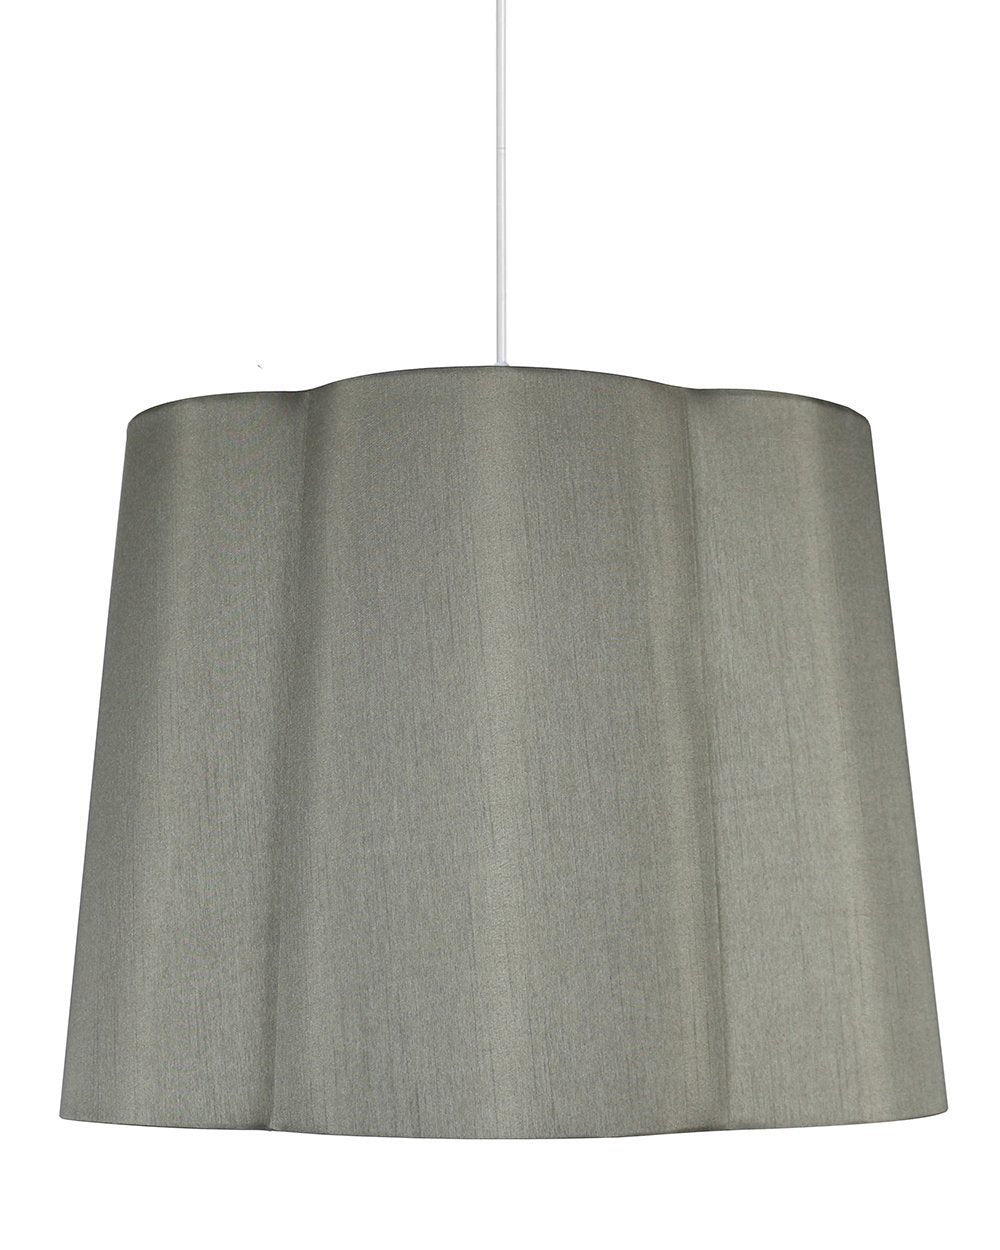 imani shade pendant with hanging light kit 16inch diameter 12inch